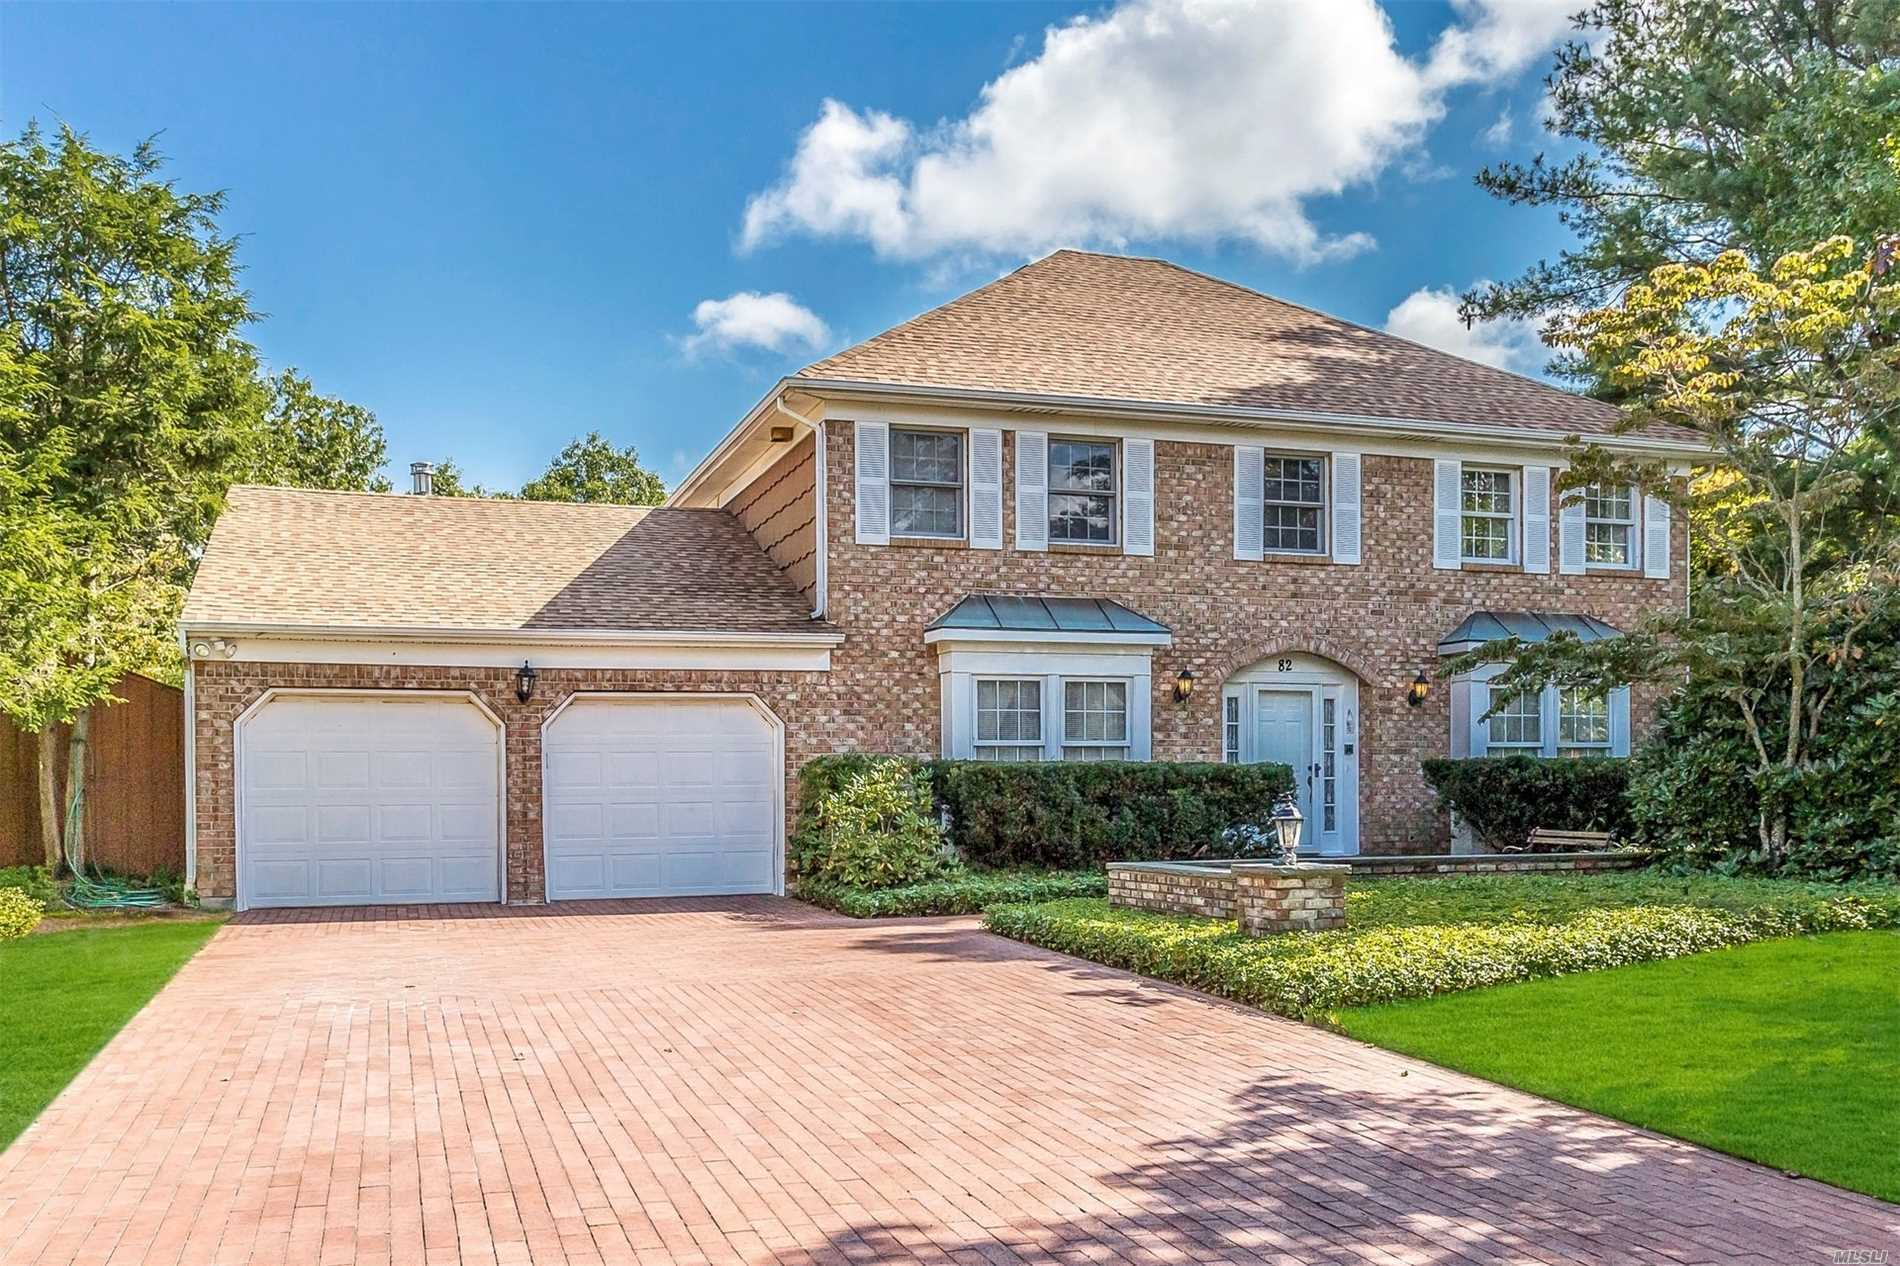 Photo of home for sale at 82 Annandale Dr, Commack NY